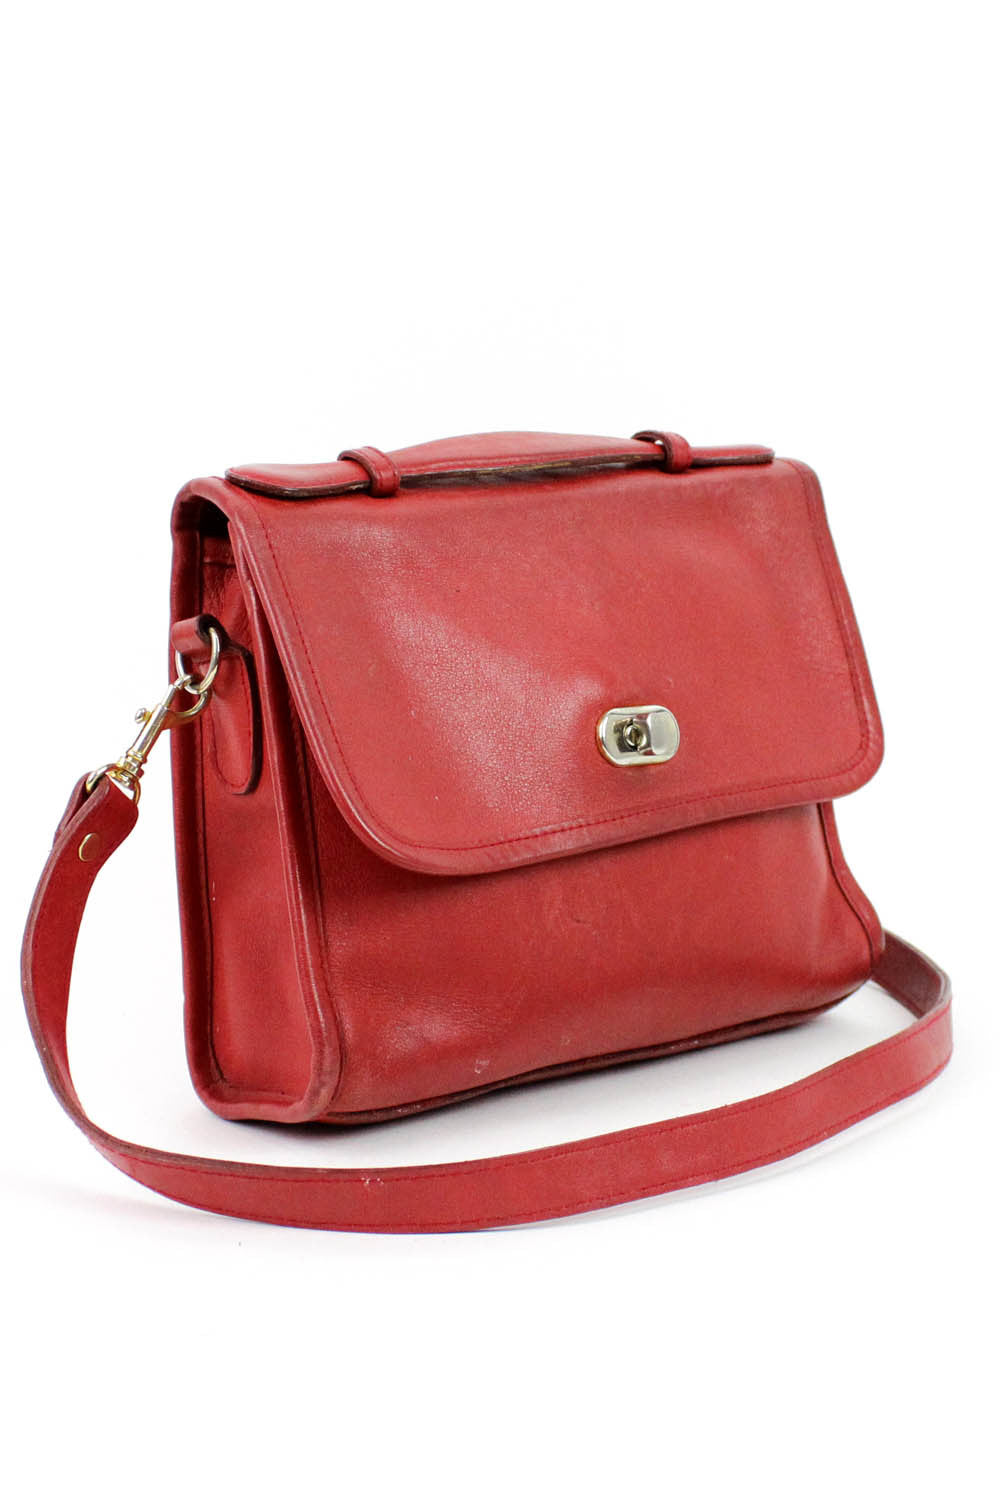 red coach style bags